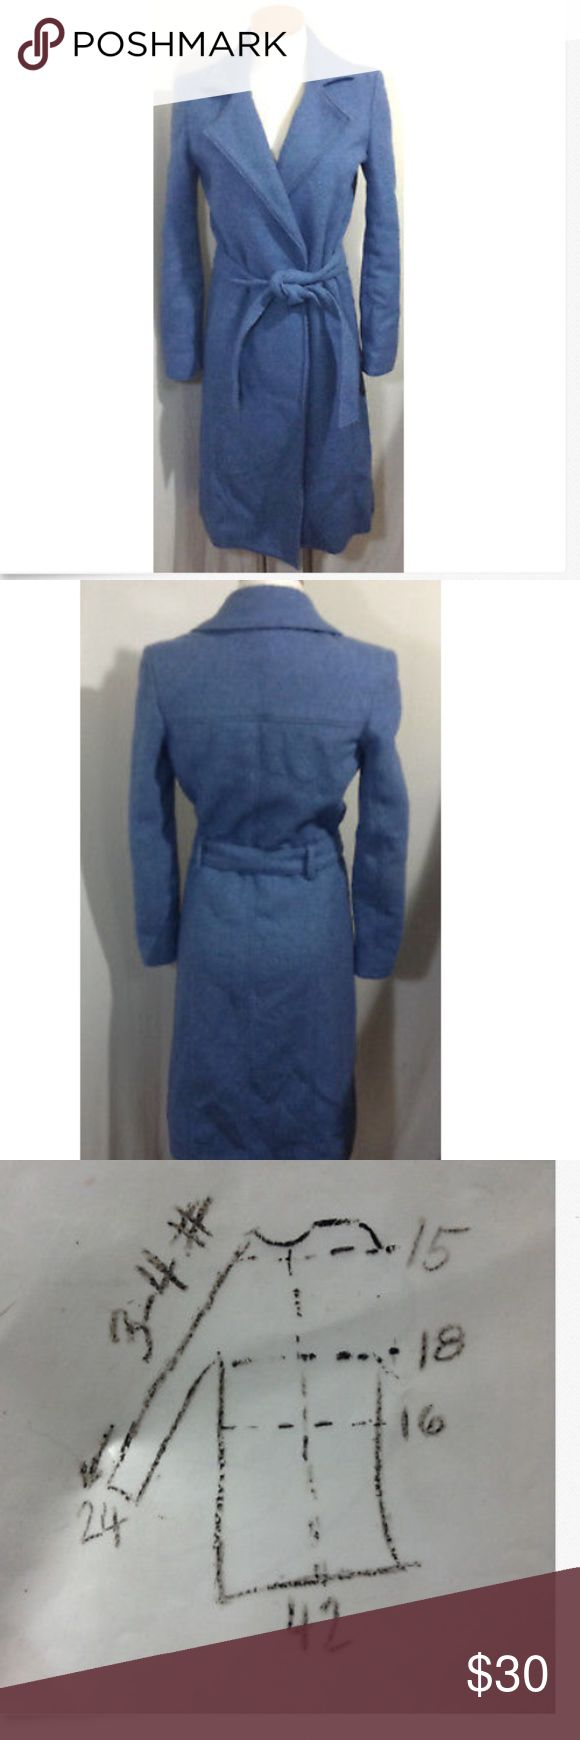 Womens Old Navy Wool Wrap Coat Blue Small Womens Old Navy wool blend lined wrap coat blue, belted size Small  Excellent condition, softer blue then the picture shows.   Measurements on a diagram in the pictures Old Navy Jackets & Coats